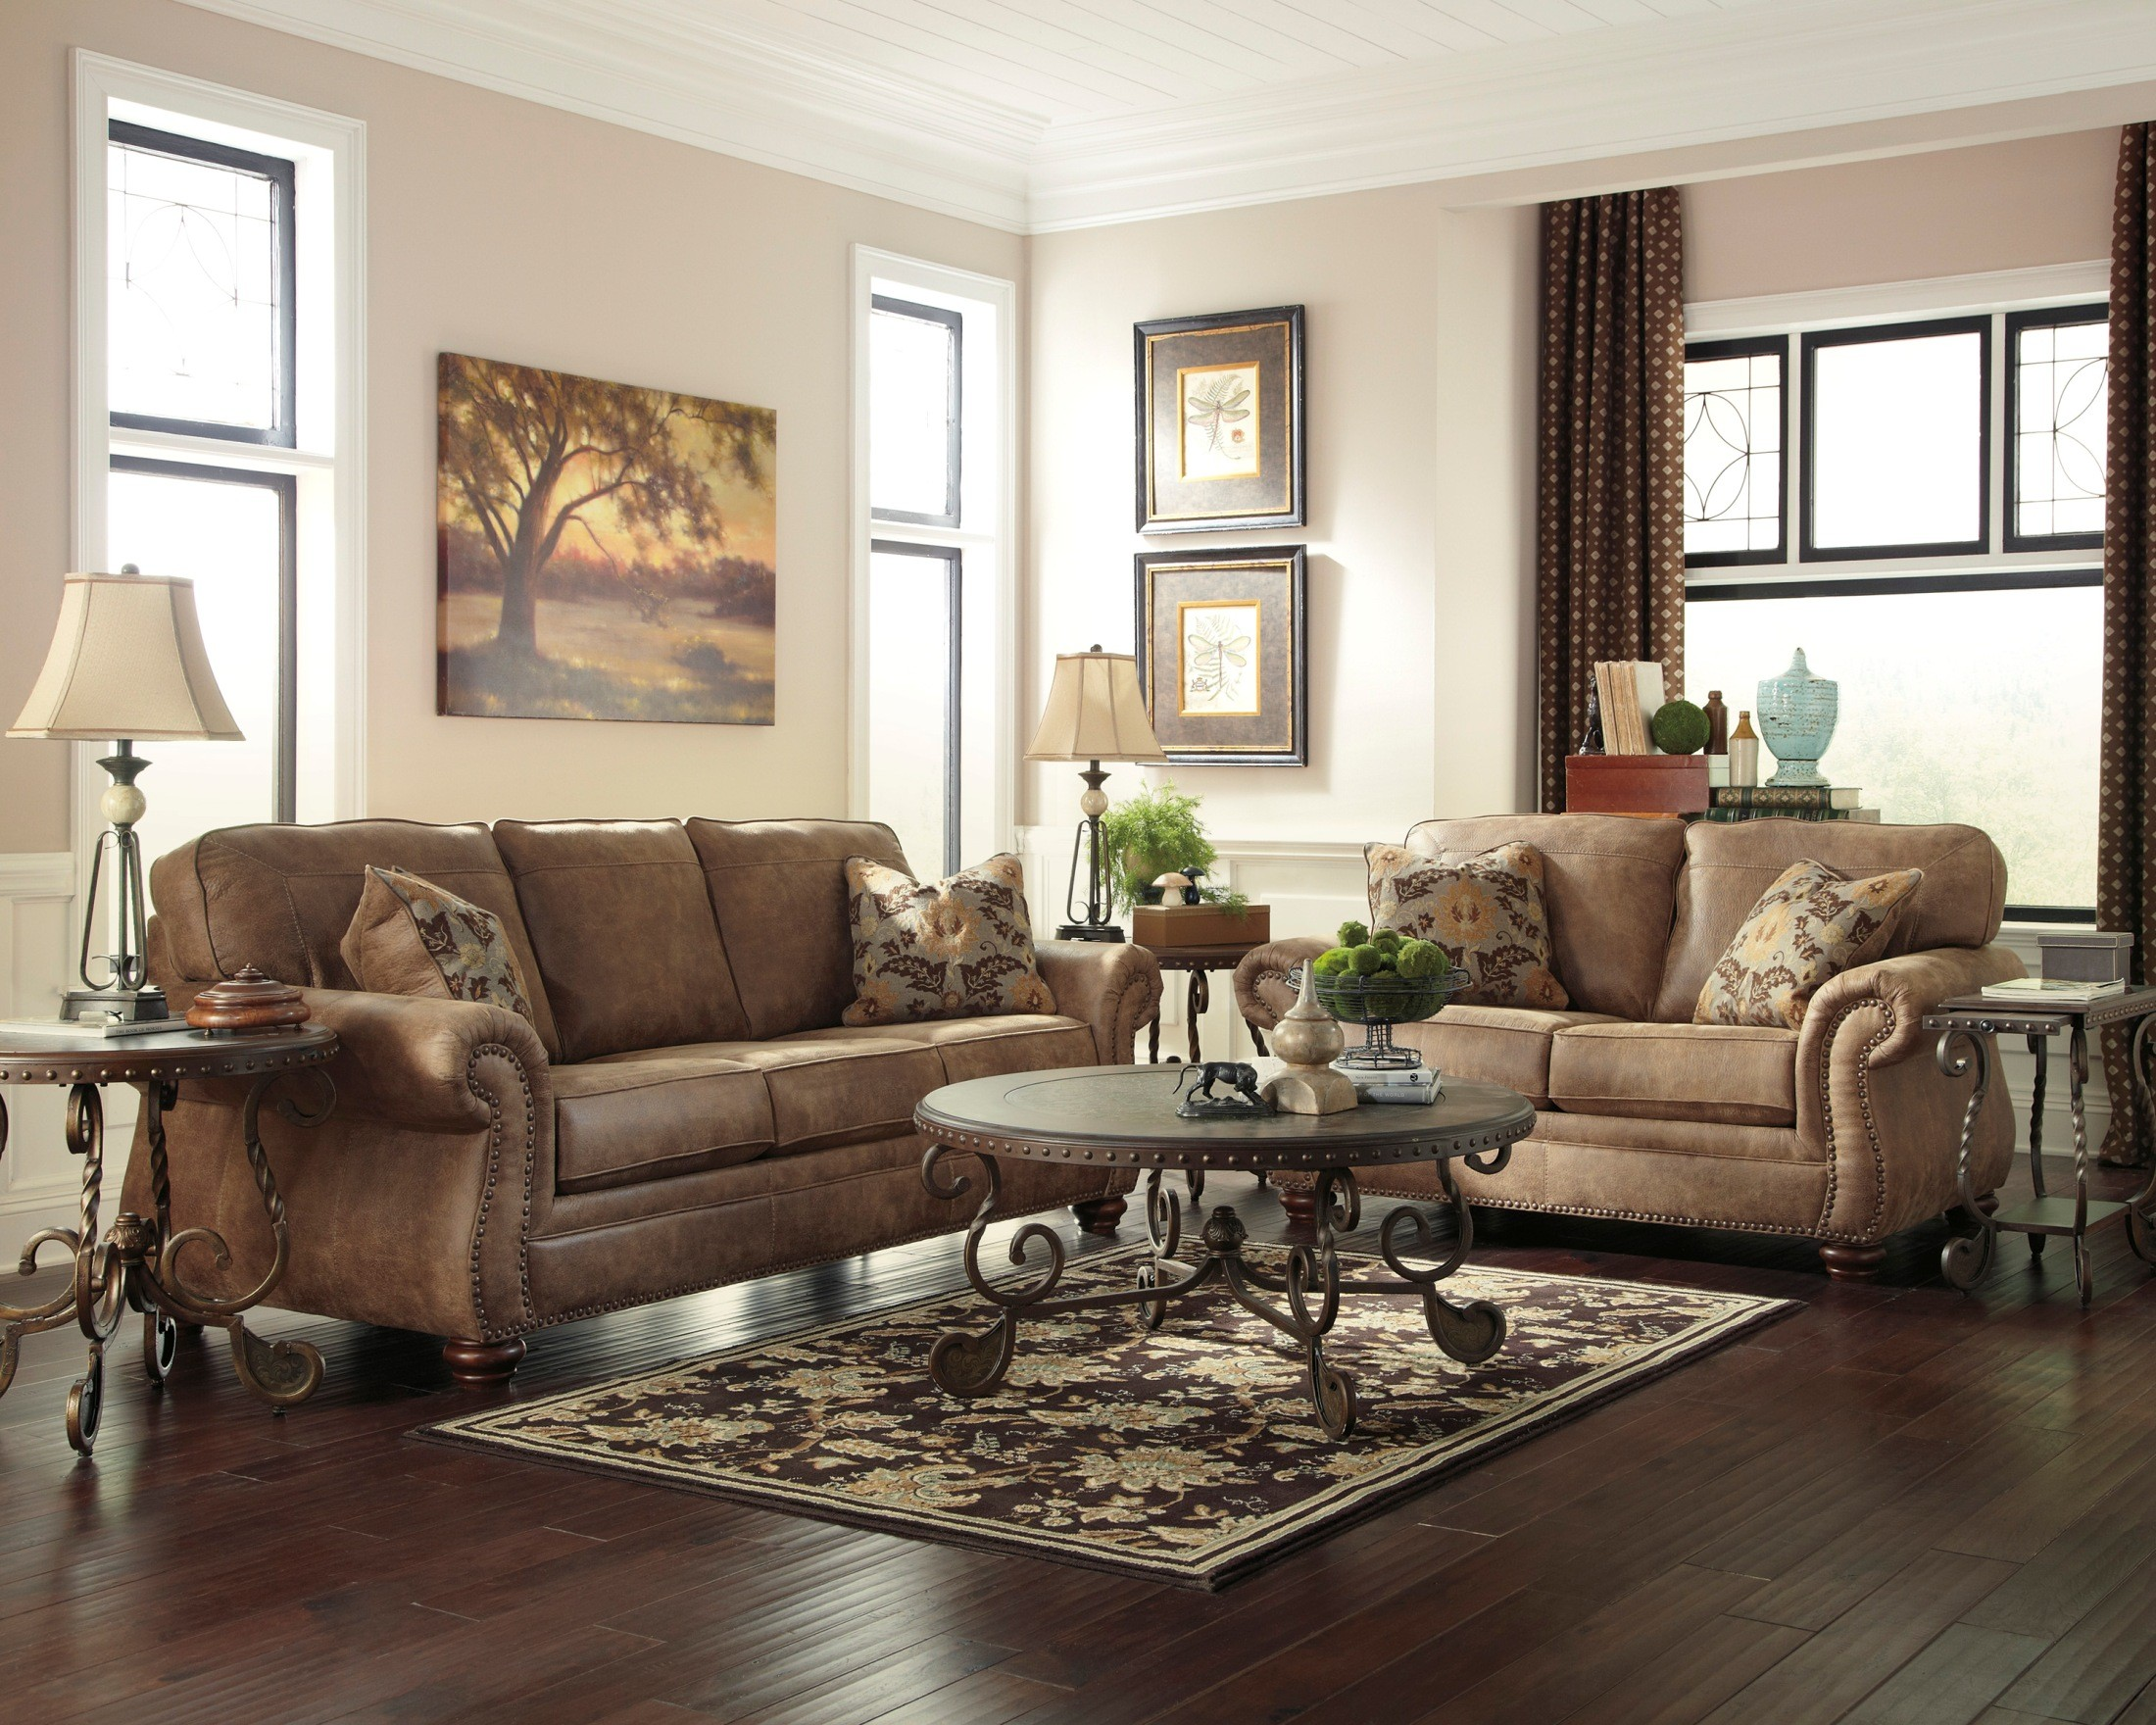 Larkinhurst Earth Living Room Set from Ashley 319013835  Coleman Furniture